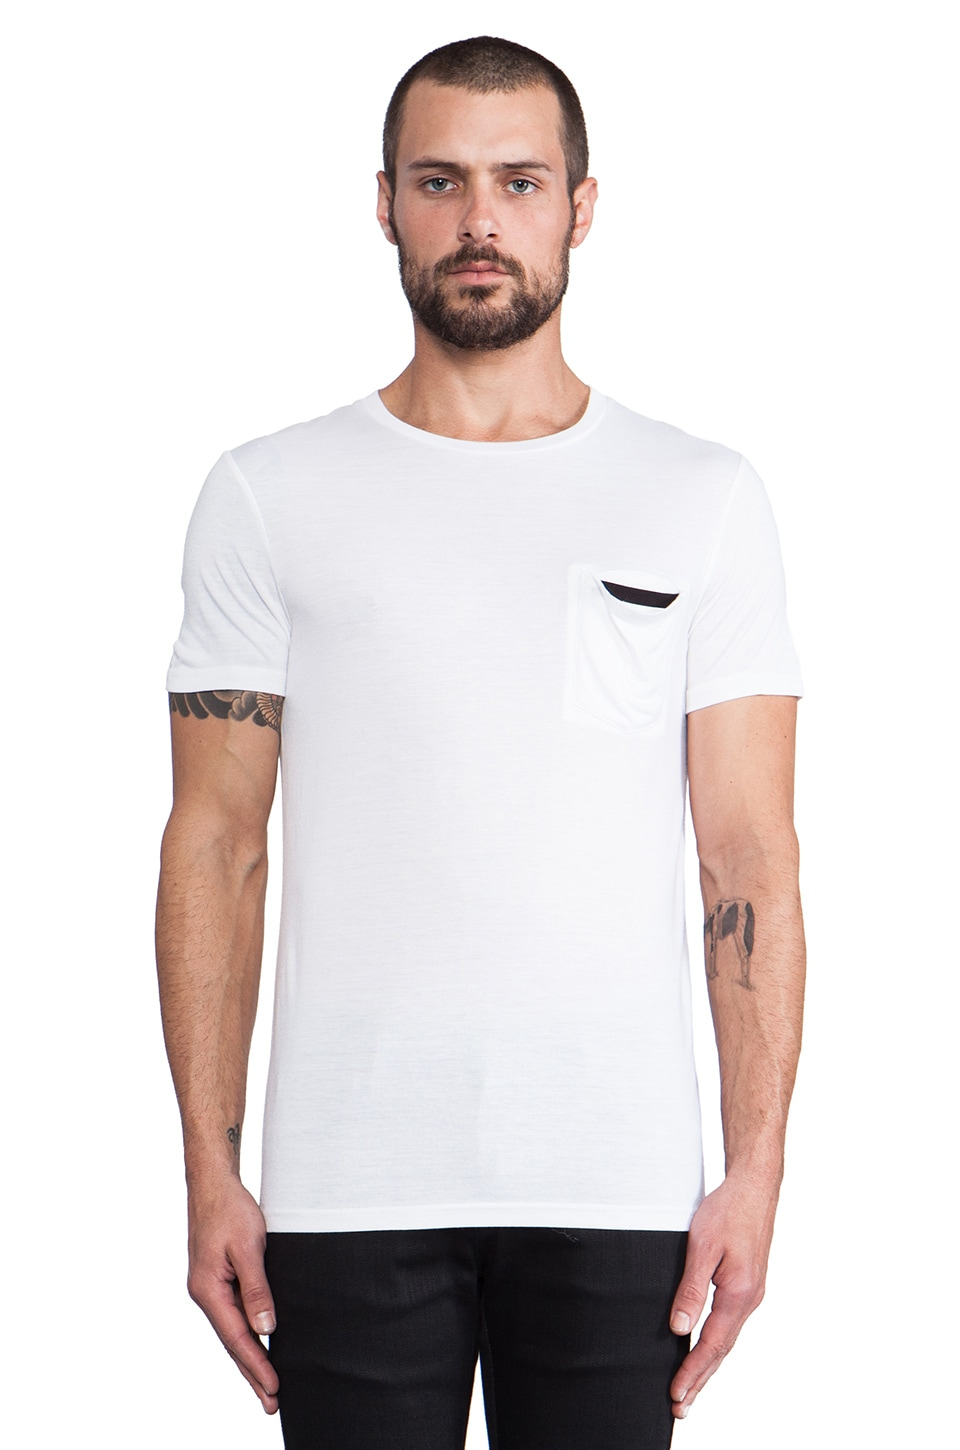 Munsoo Kwon Contrast Tee in White